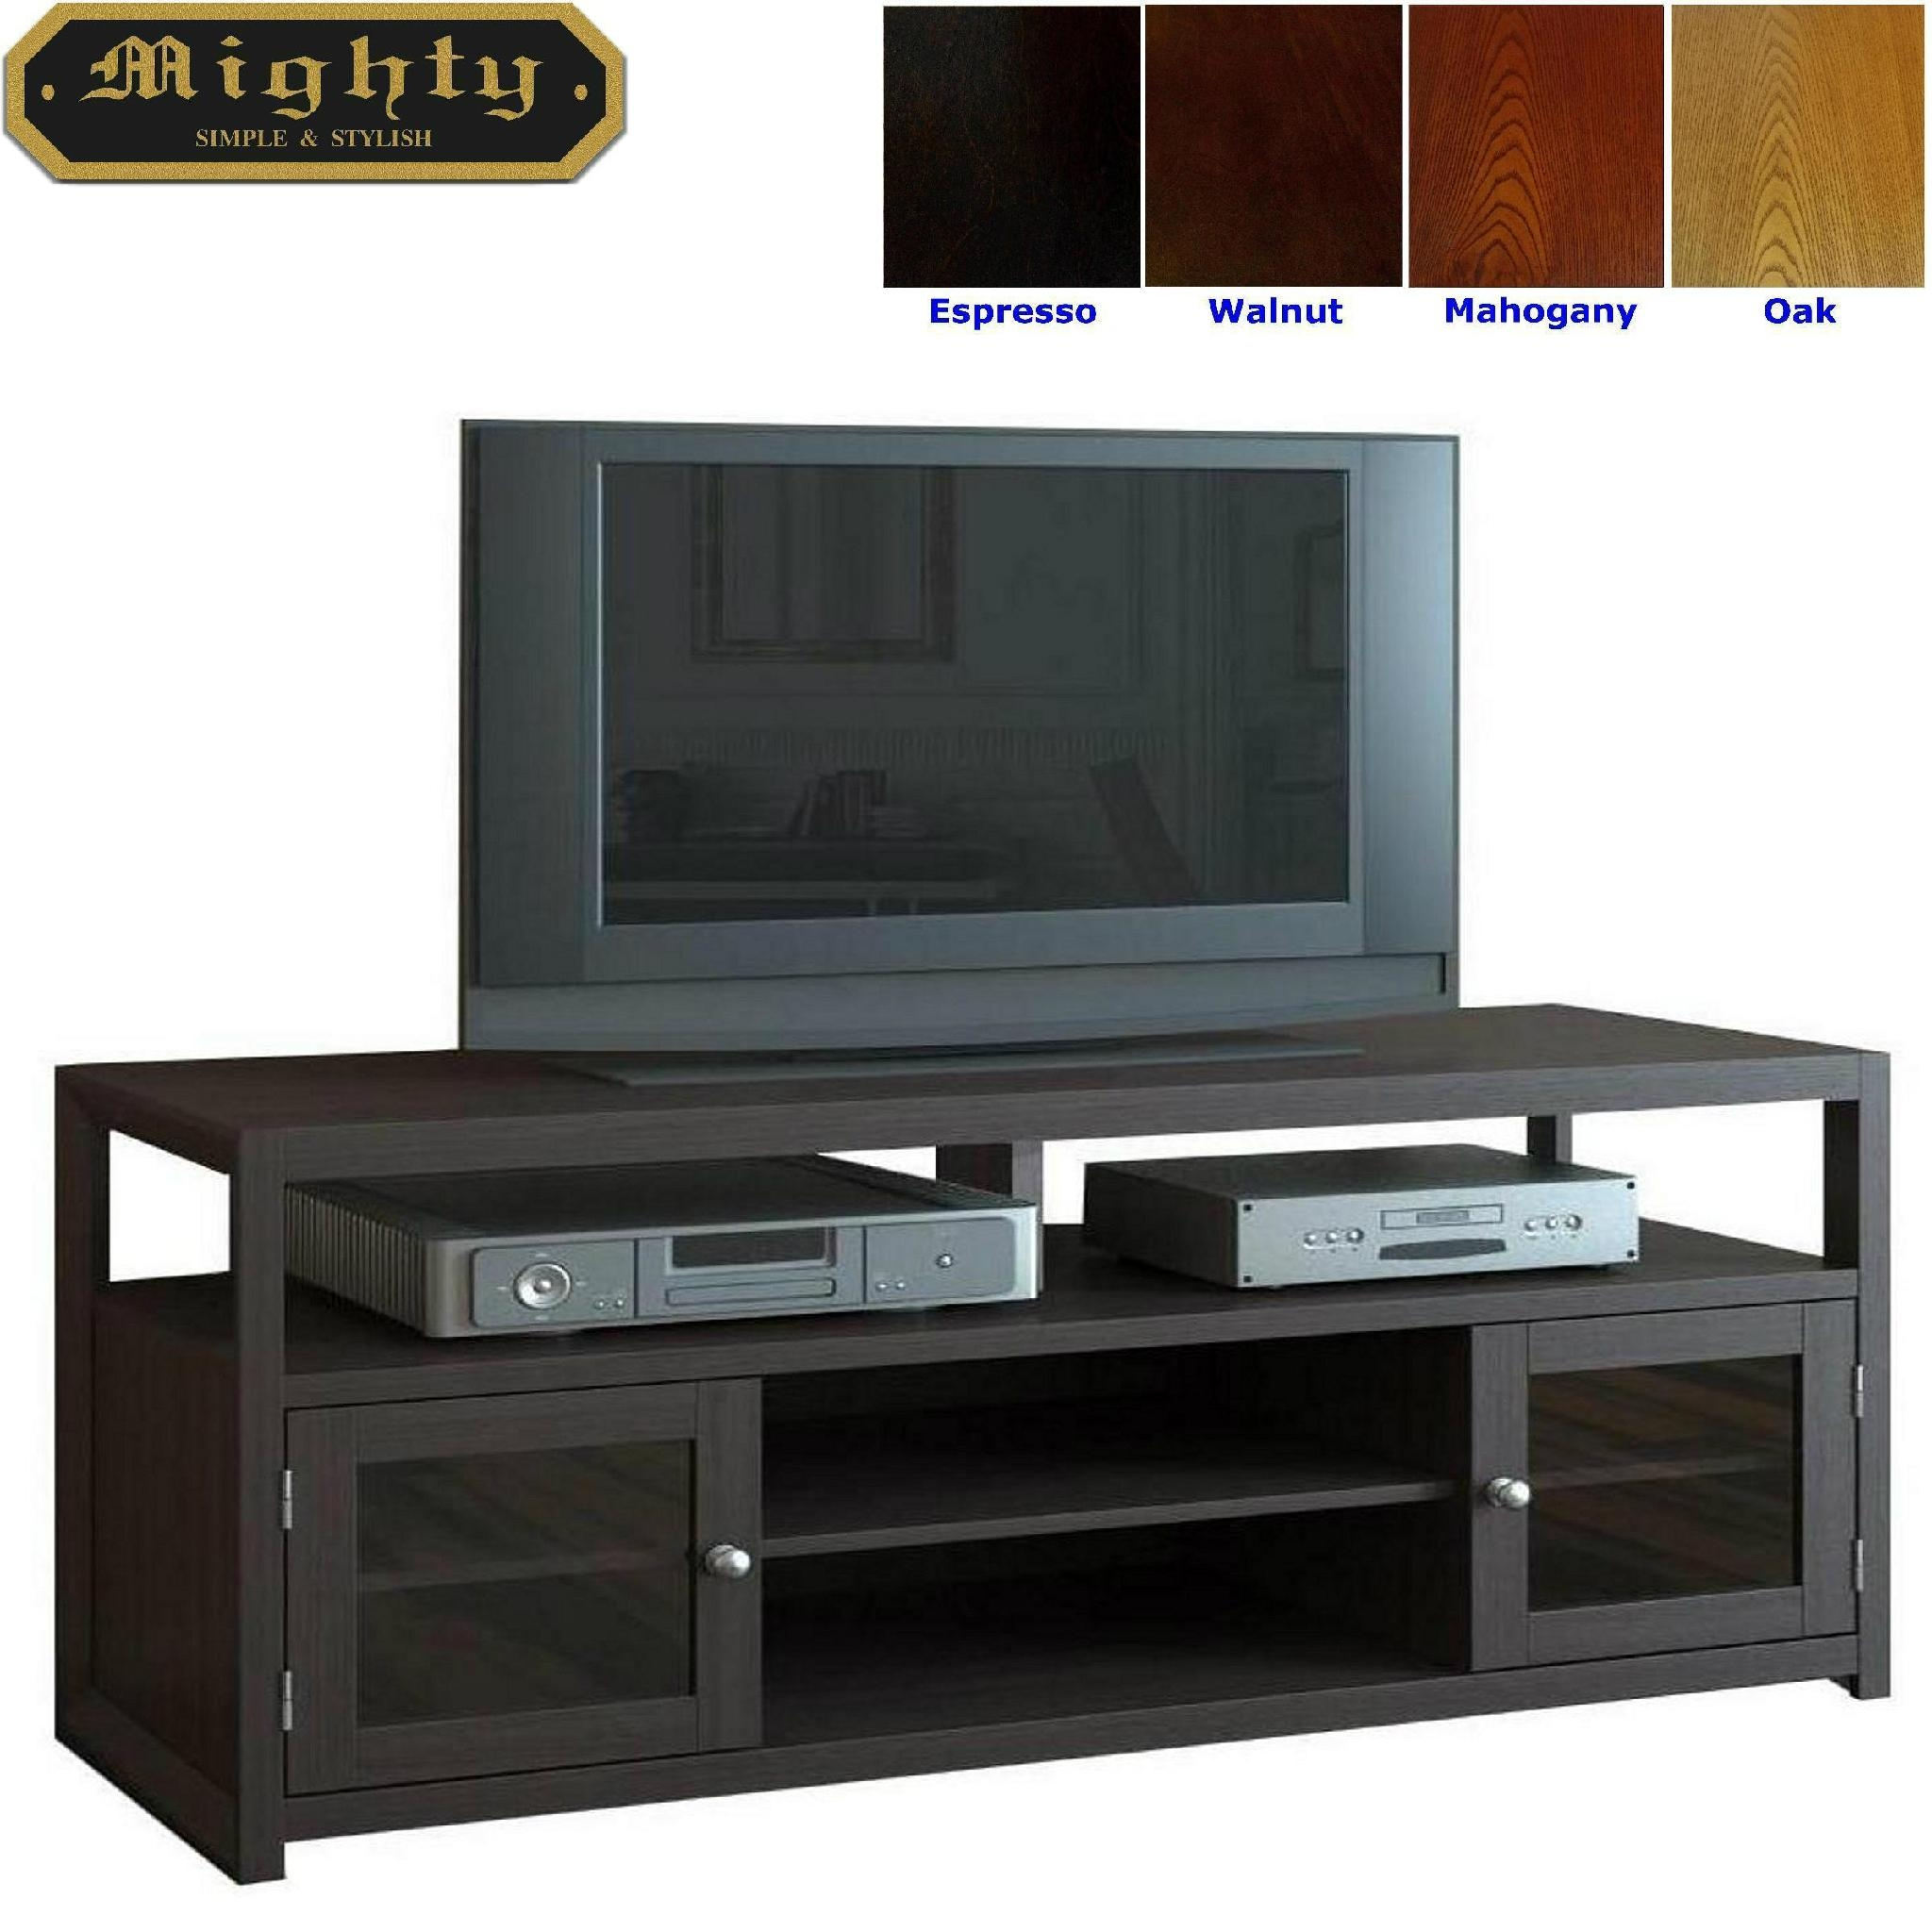 60 inch wooden espresso two doors plasma tv media stands. Black Bedroom Furniture Sets. Home Design Ideas